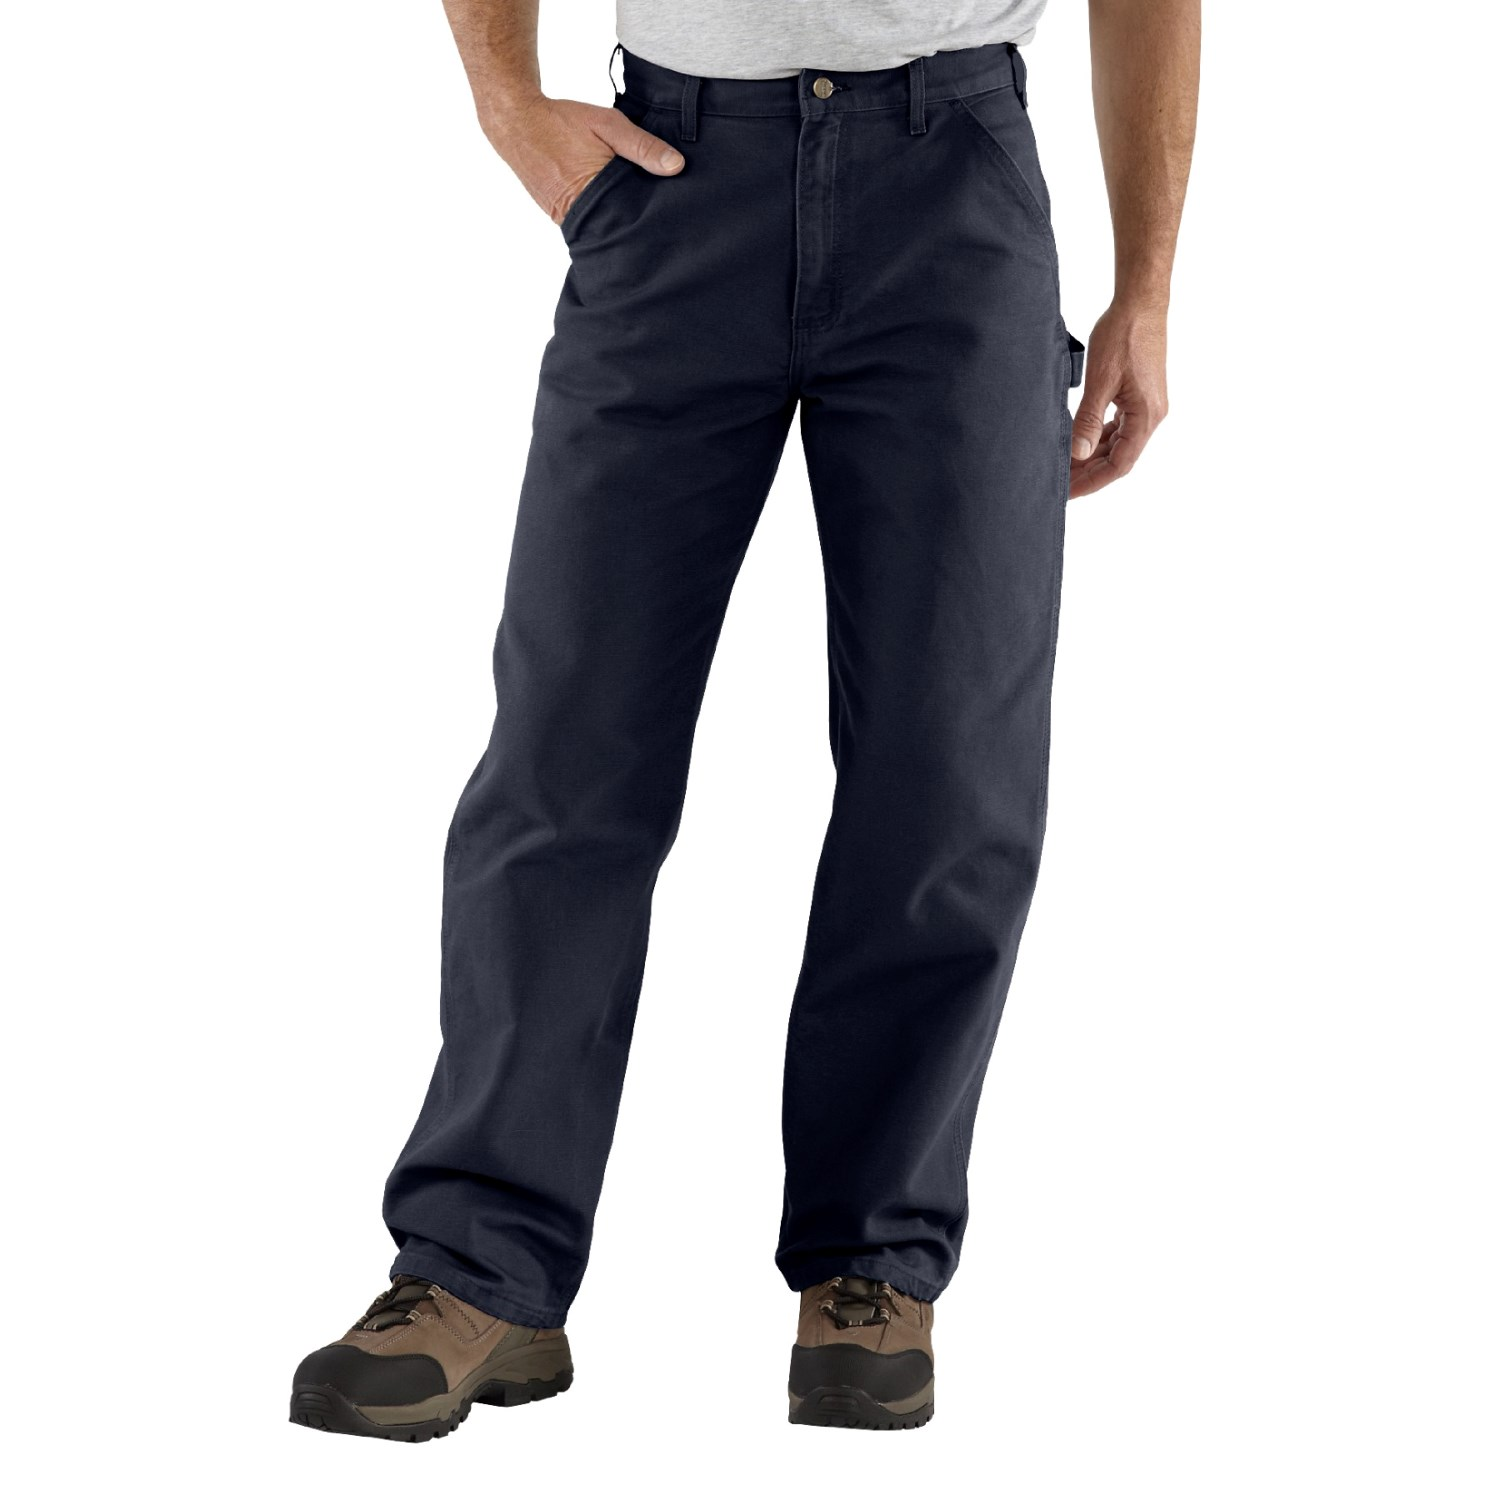 High-waisted pants - Review of Carhartt Washed Duck Work Pants